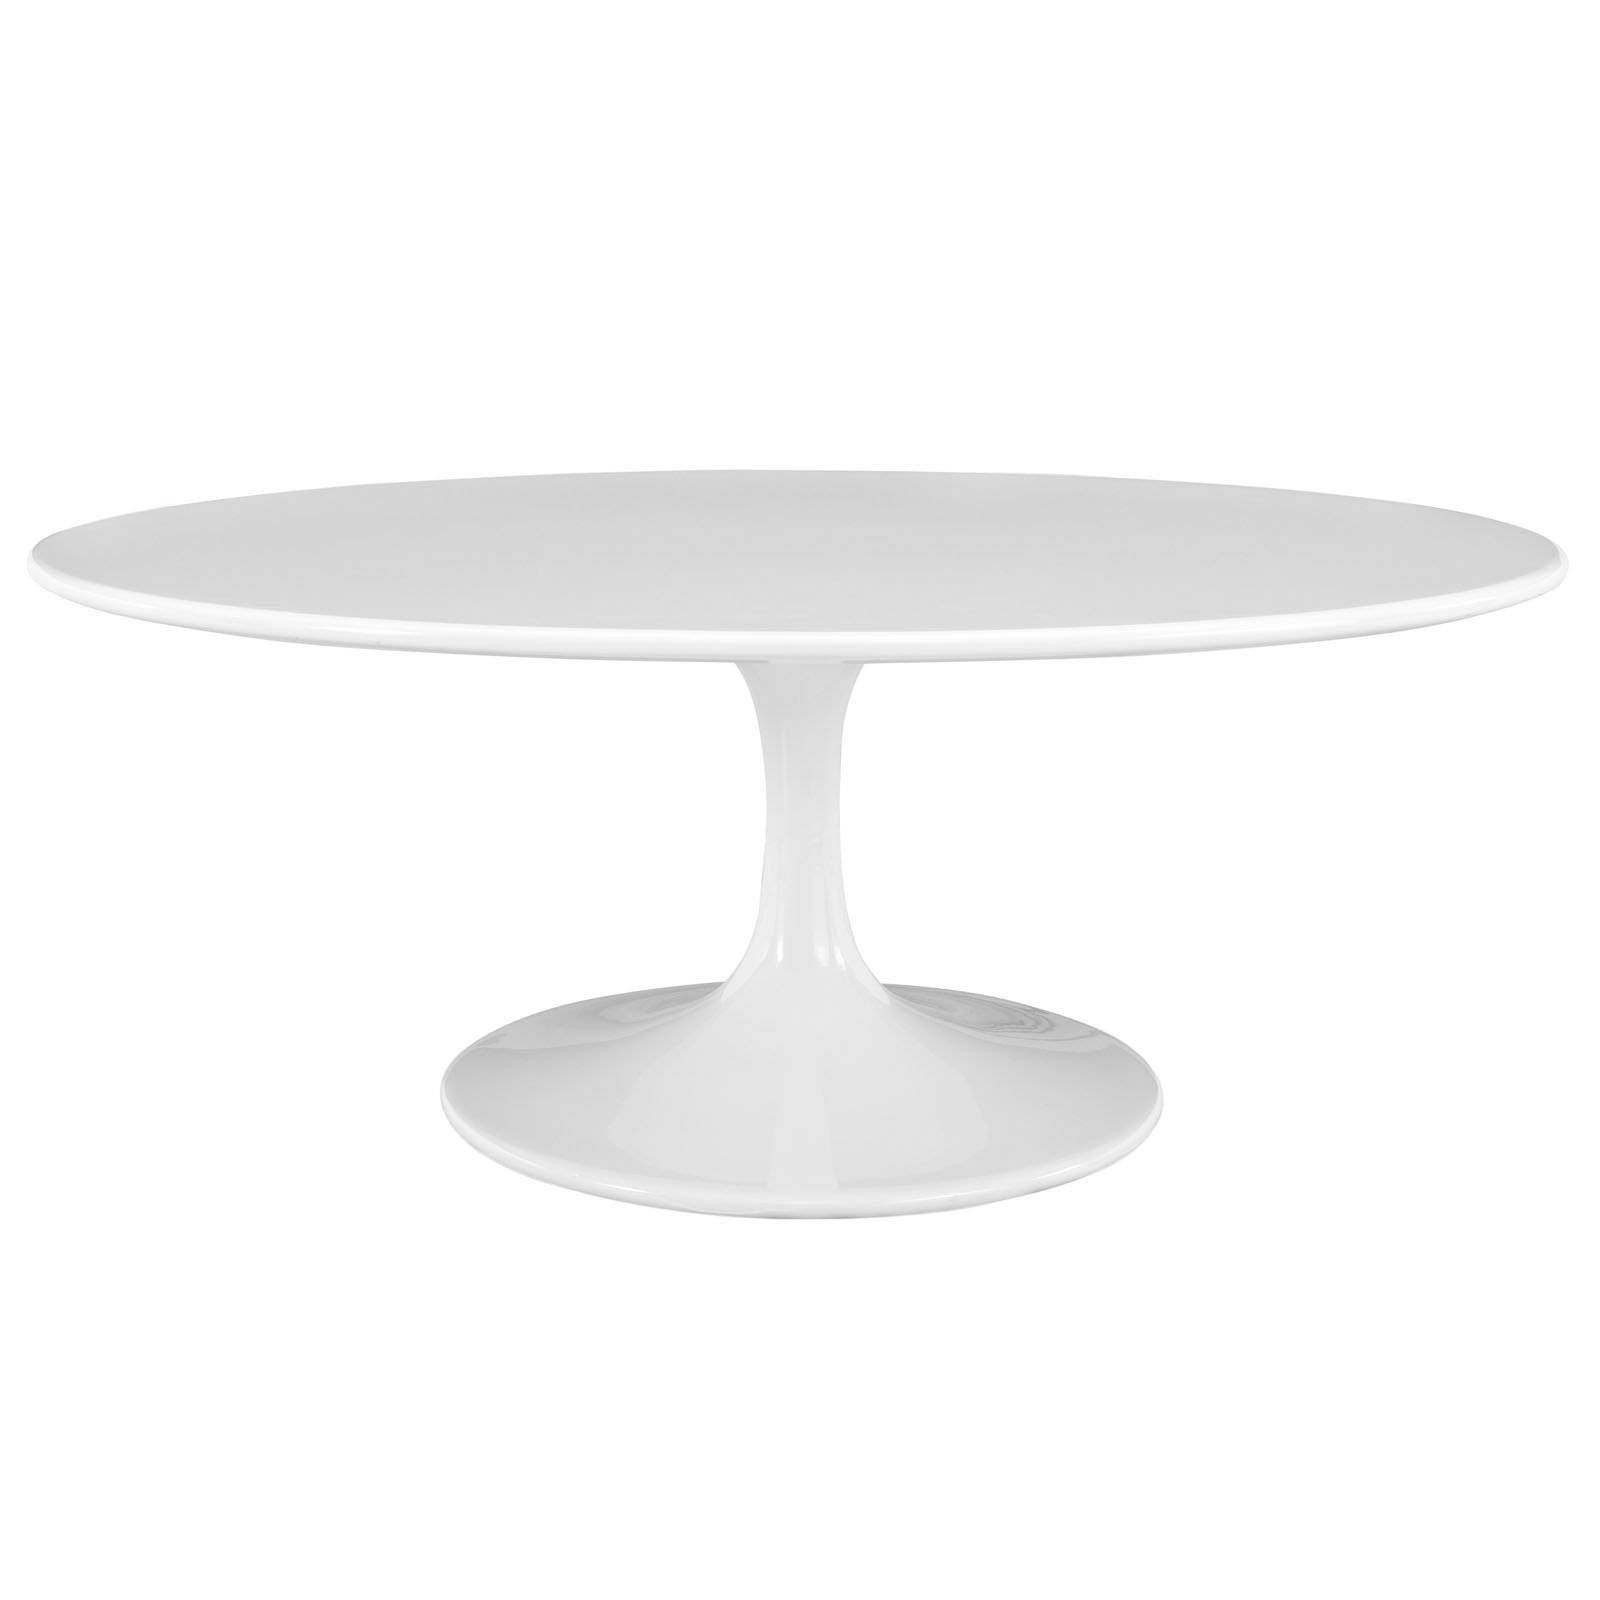 Modway Lippa Oval White Fiberglass Coffee Table - Coffee Tables At with regard to Oval White Coffee Tables (Image 22 of 30)